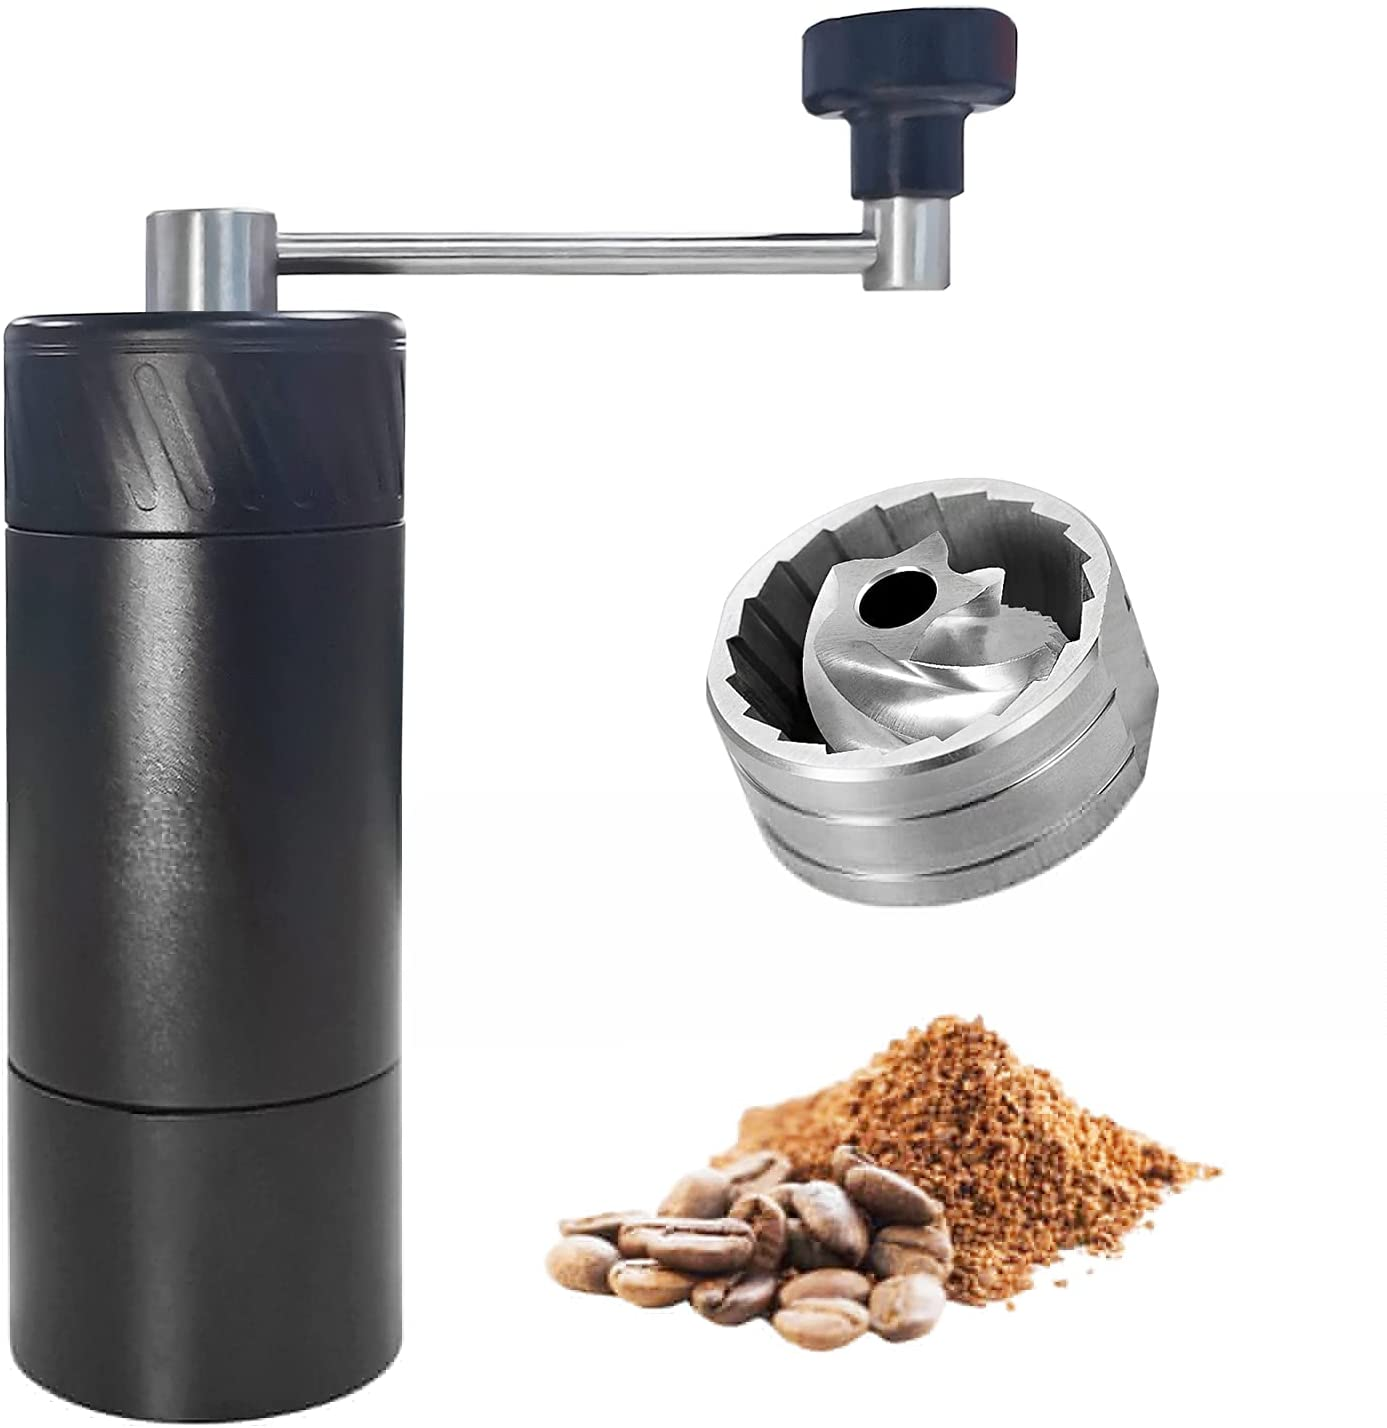 BAIDE PACK Manual Coffee Grinder Assembl with Capacity wholesale 35g Reservation Black